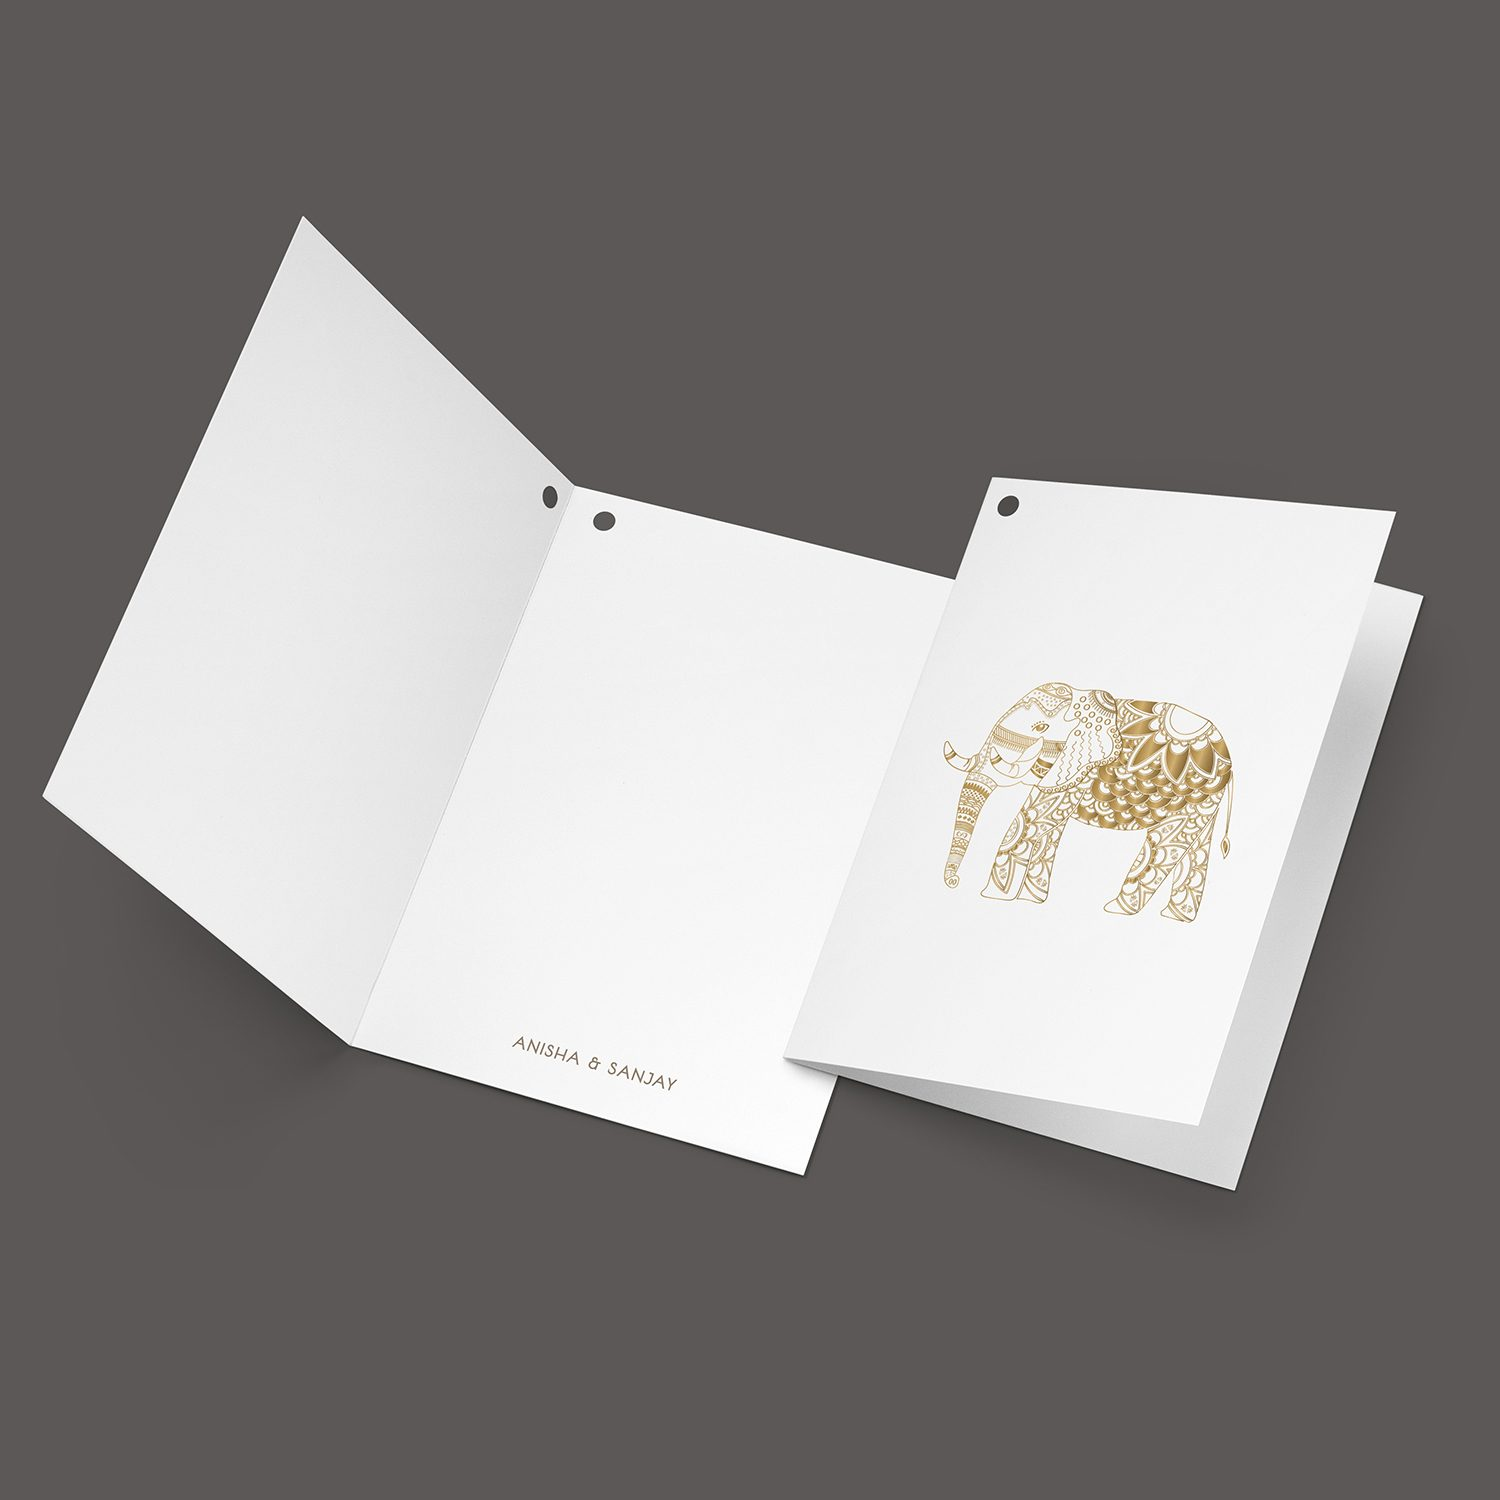 Elephant Note Tag Mockup